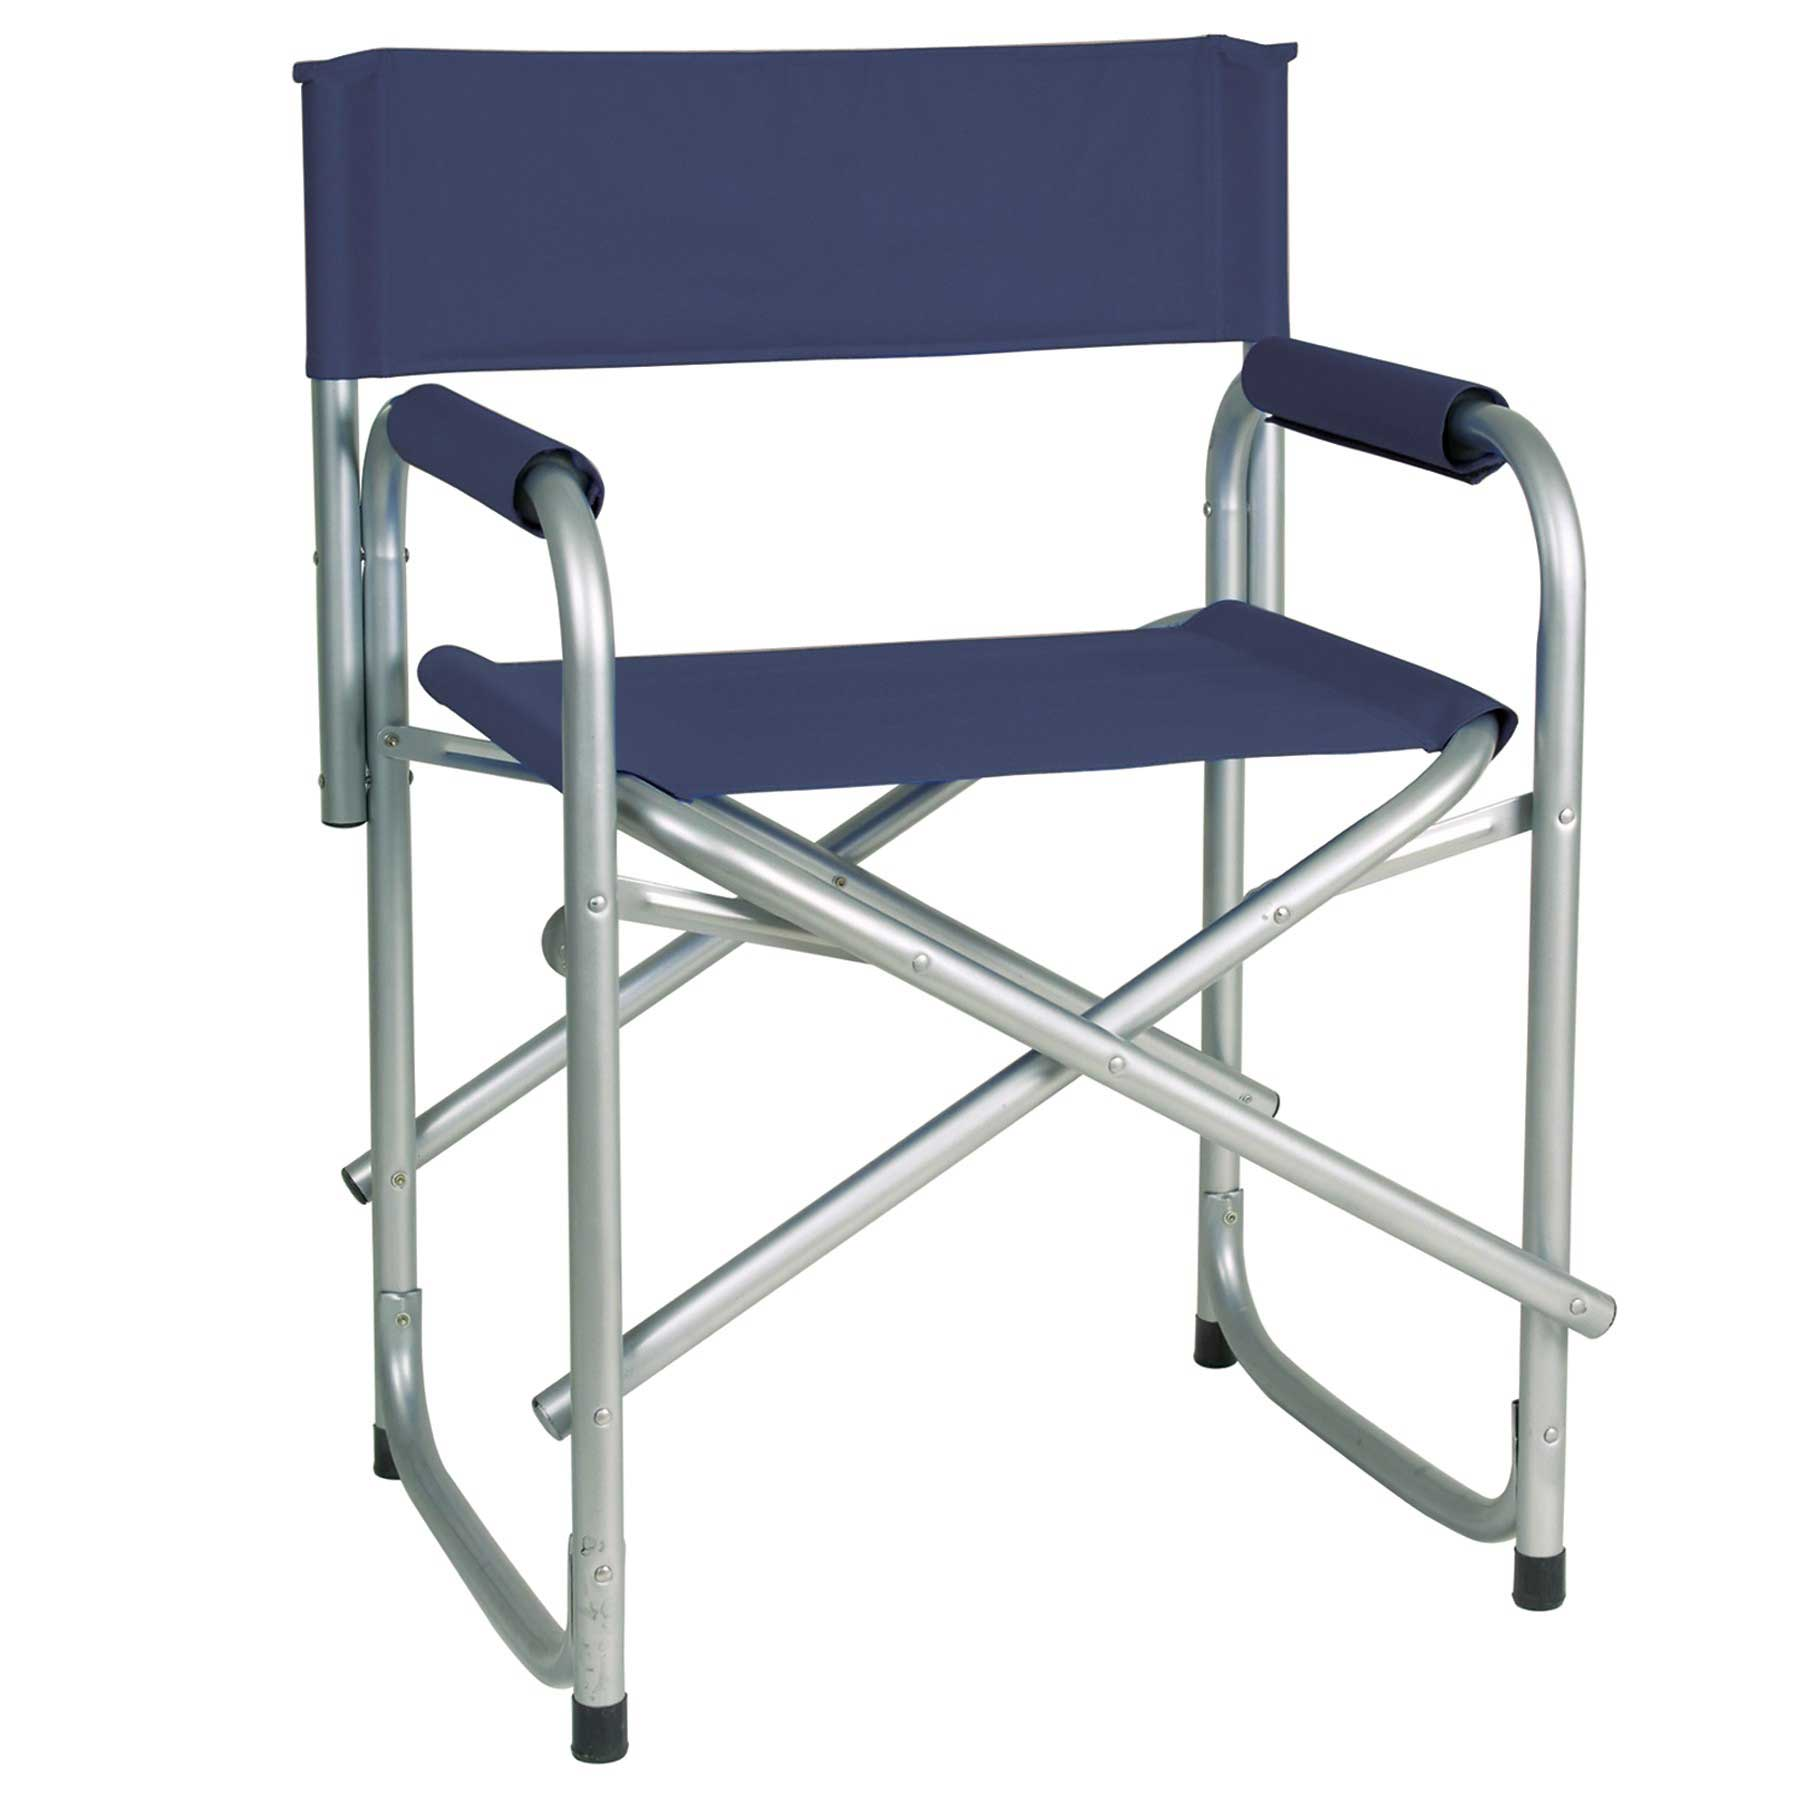 111960014032 likewise 171324400123 additionally 171324400123 also 222134286127 besides Cc 101. on heavy duty folding camping chairs